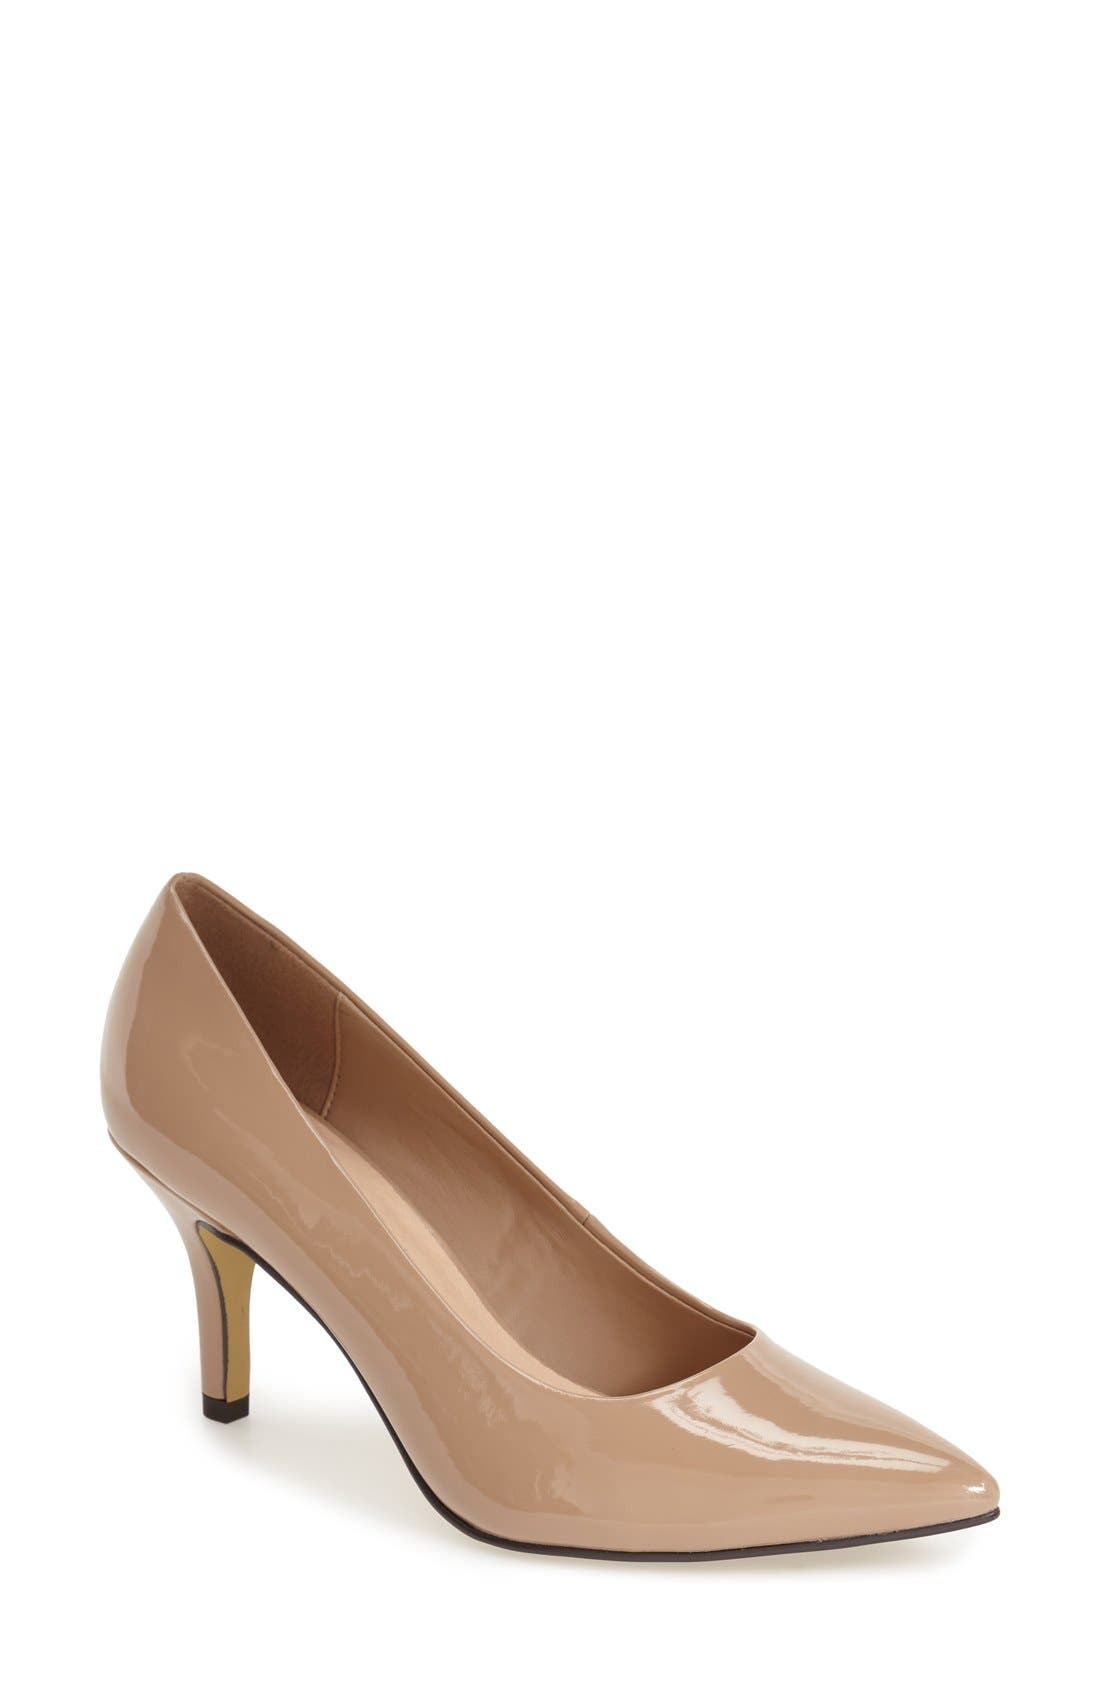 Alternate Image 1 Selected - Bella Vita 'Define' Pointy Toe Pump (Women)